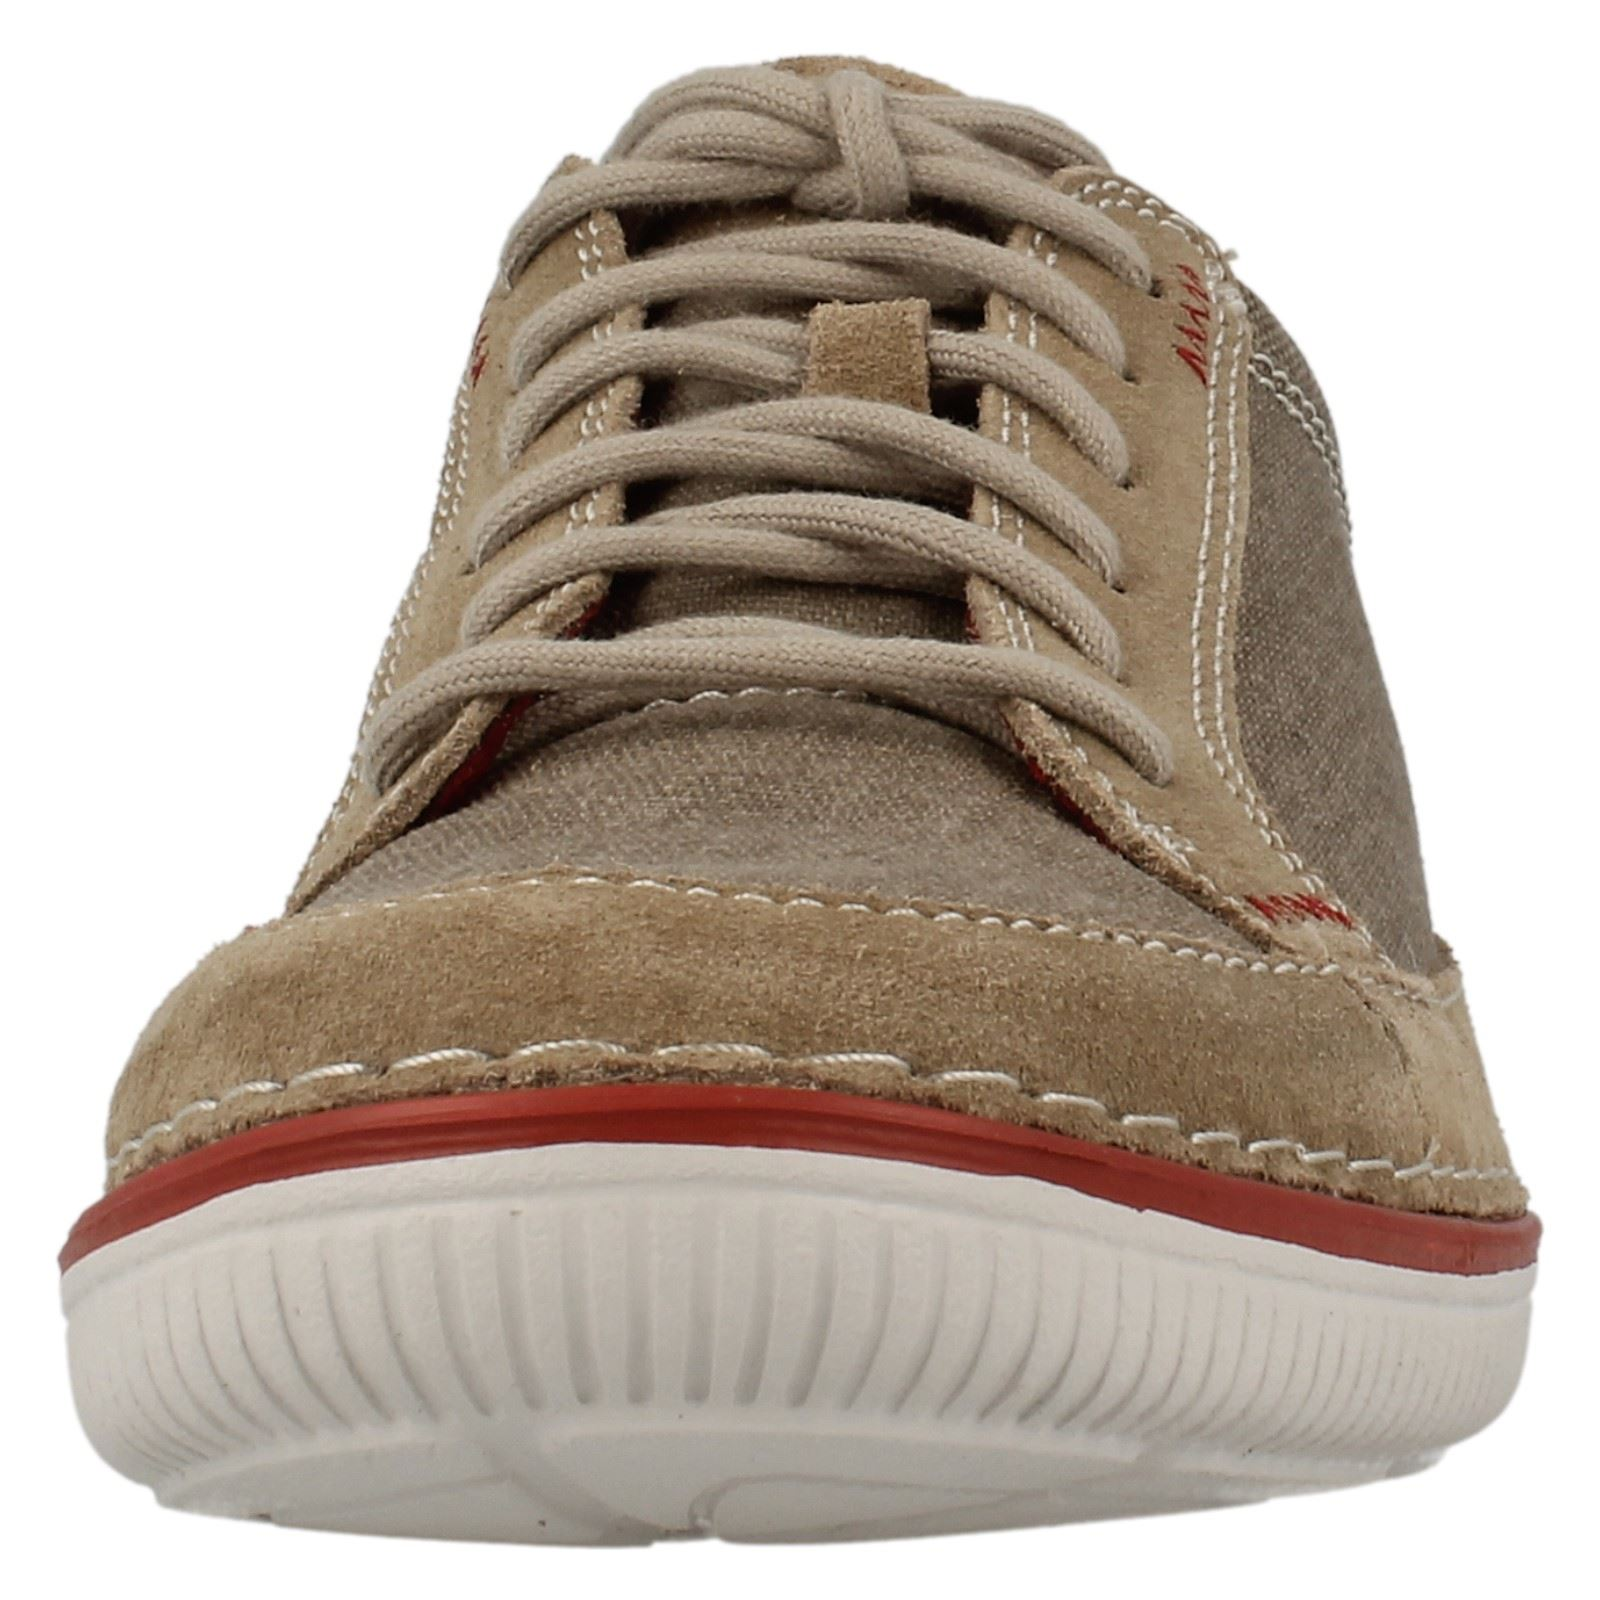 Mens Mens Mens Clarks Casual Shoes Sulley Ollie 61ff8b